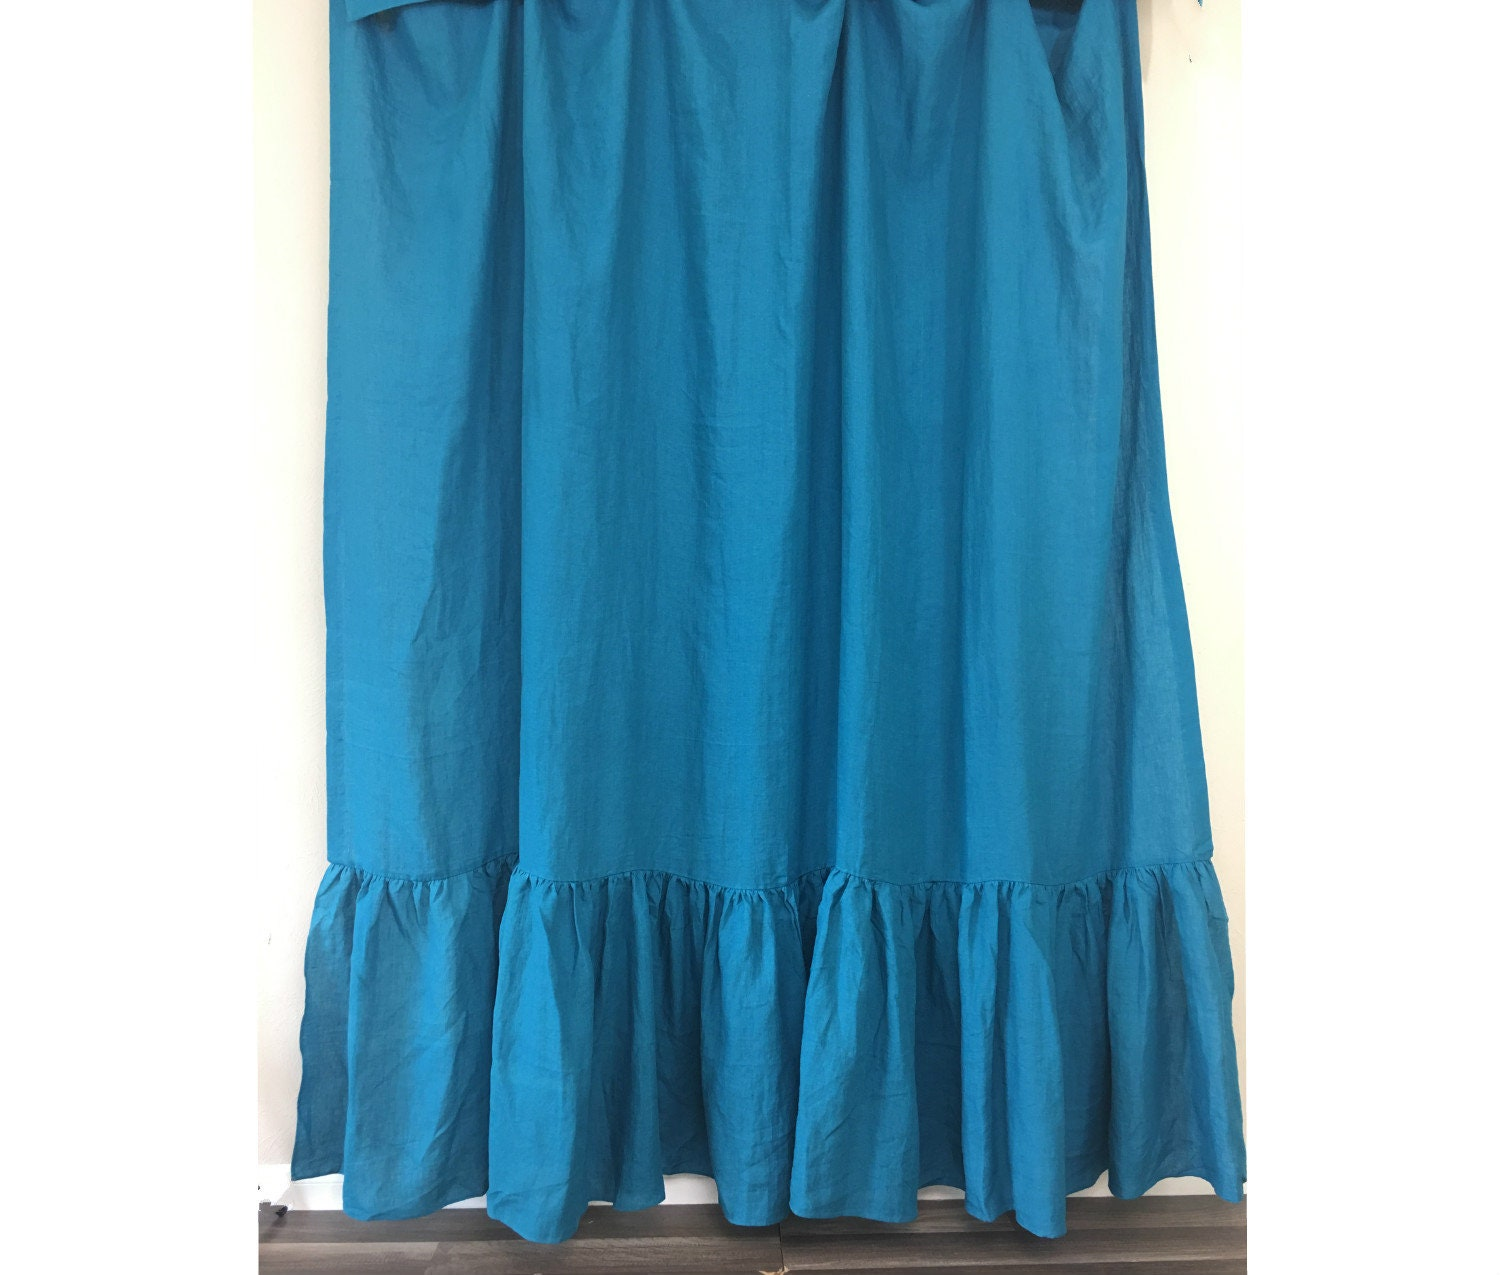 Teal Blue Linen Shower Curtain With Mermaid Long Ruffles Blue Linen Custom Shower Curtain Extra Long Wide